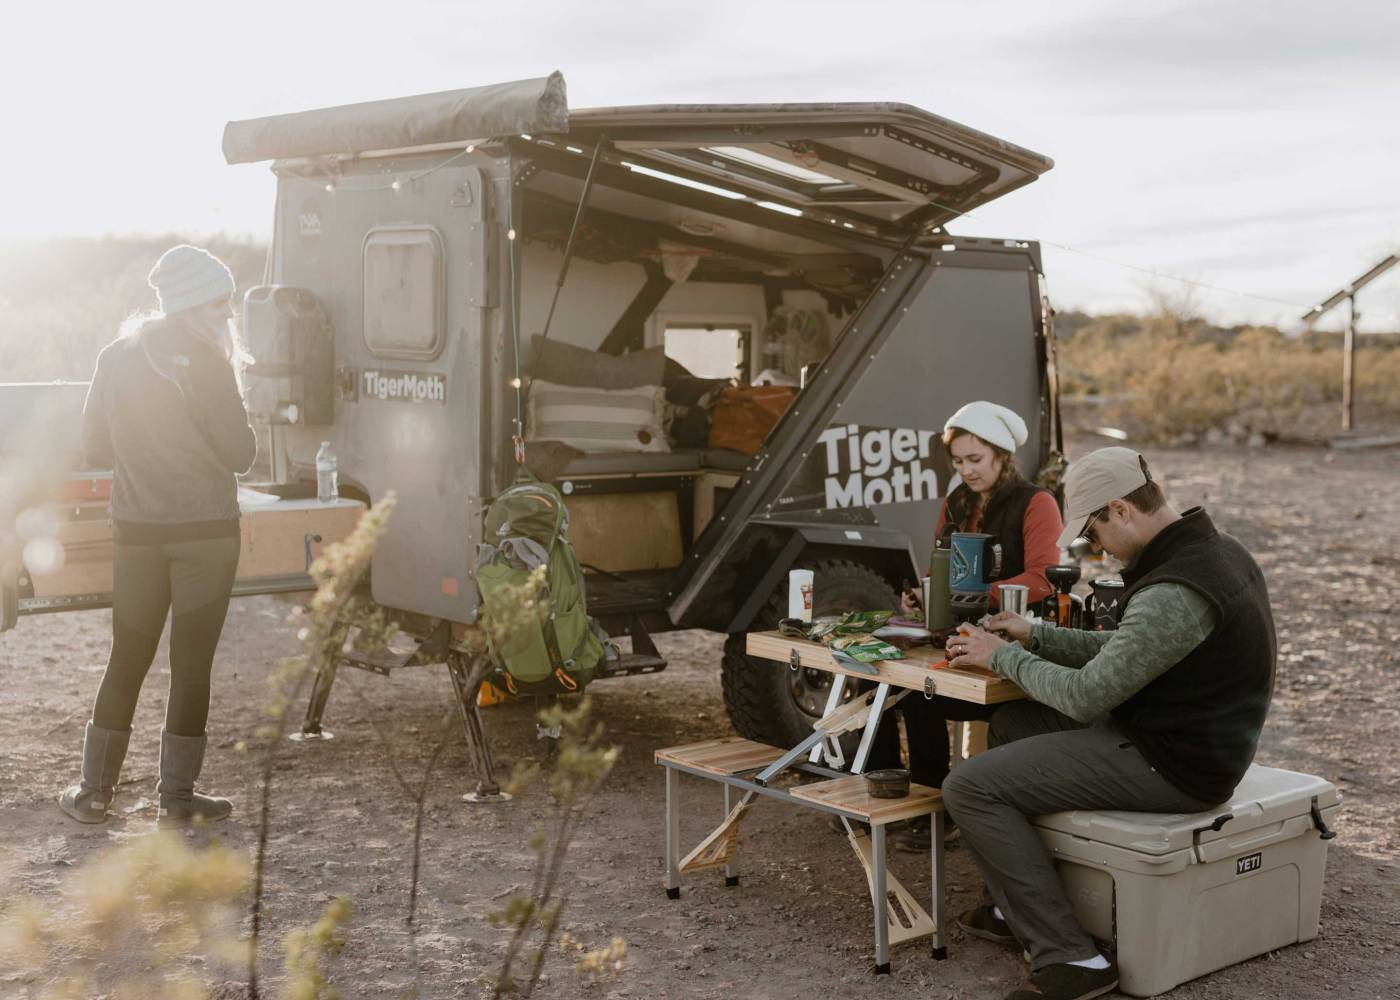 The Best Lightweight Camping Trailers for Adventuring